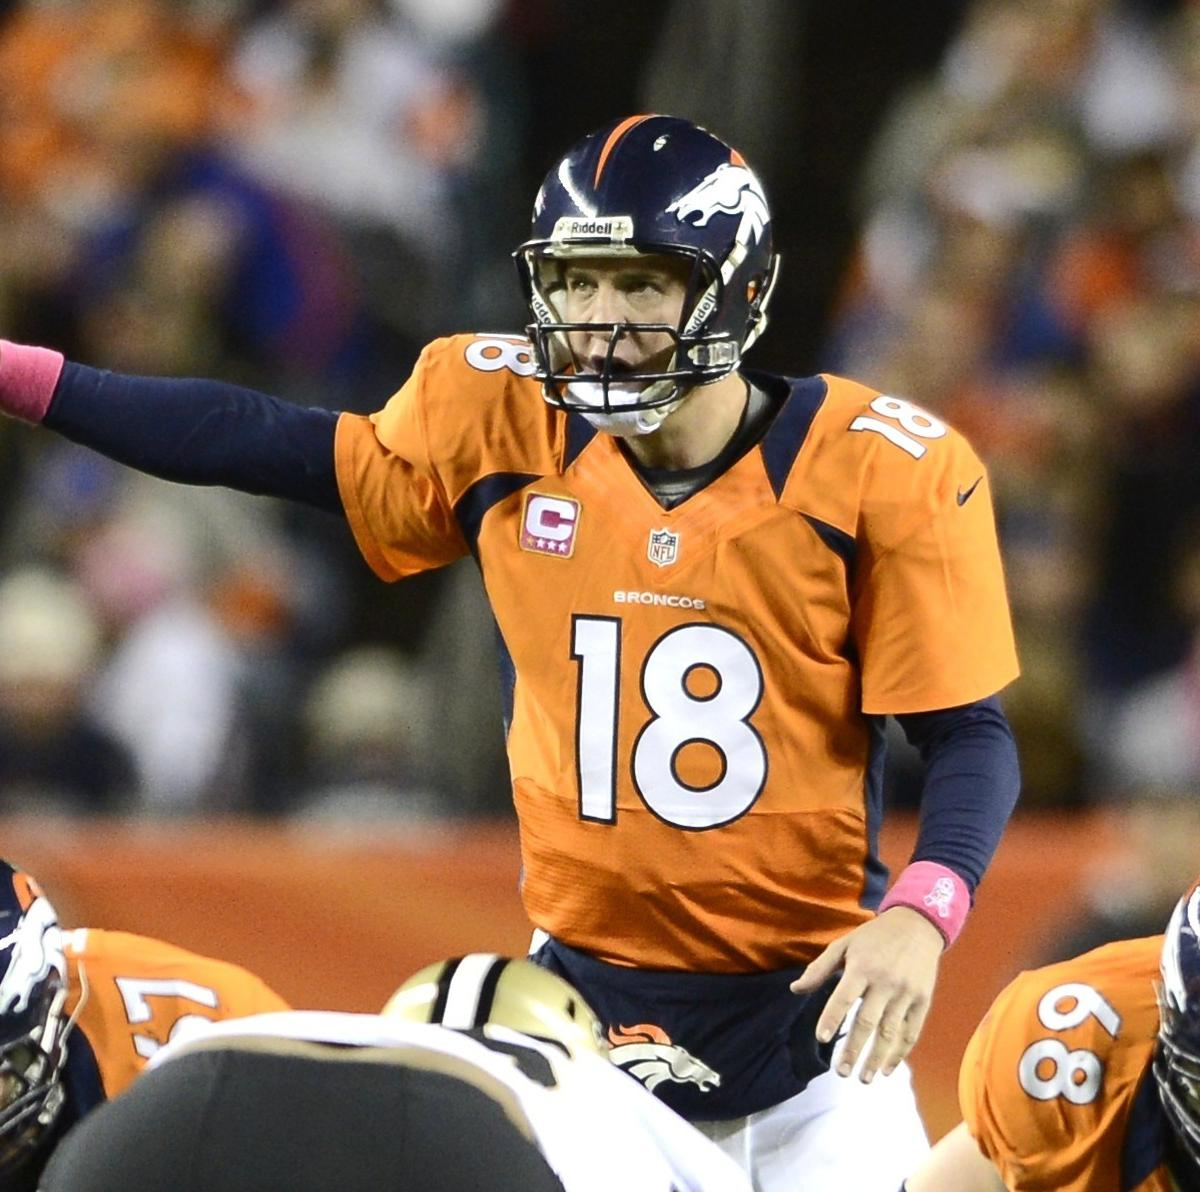 New Orleans Saints Vs. Denver Broncos: Live Score